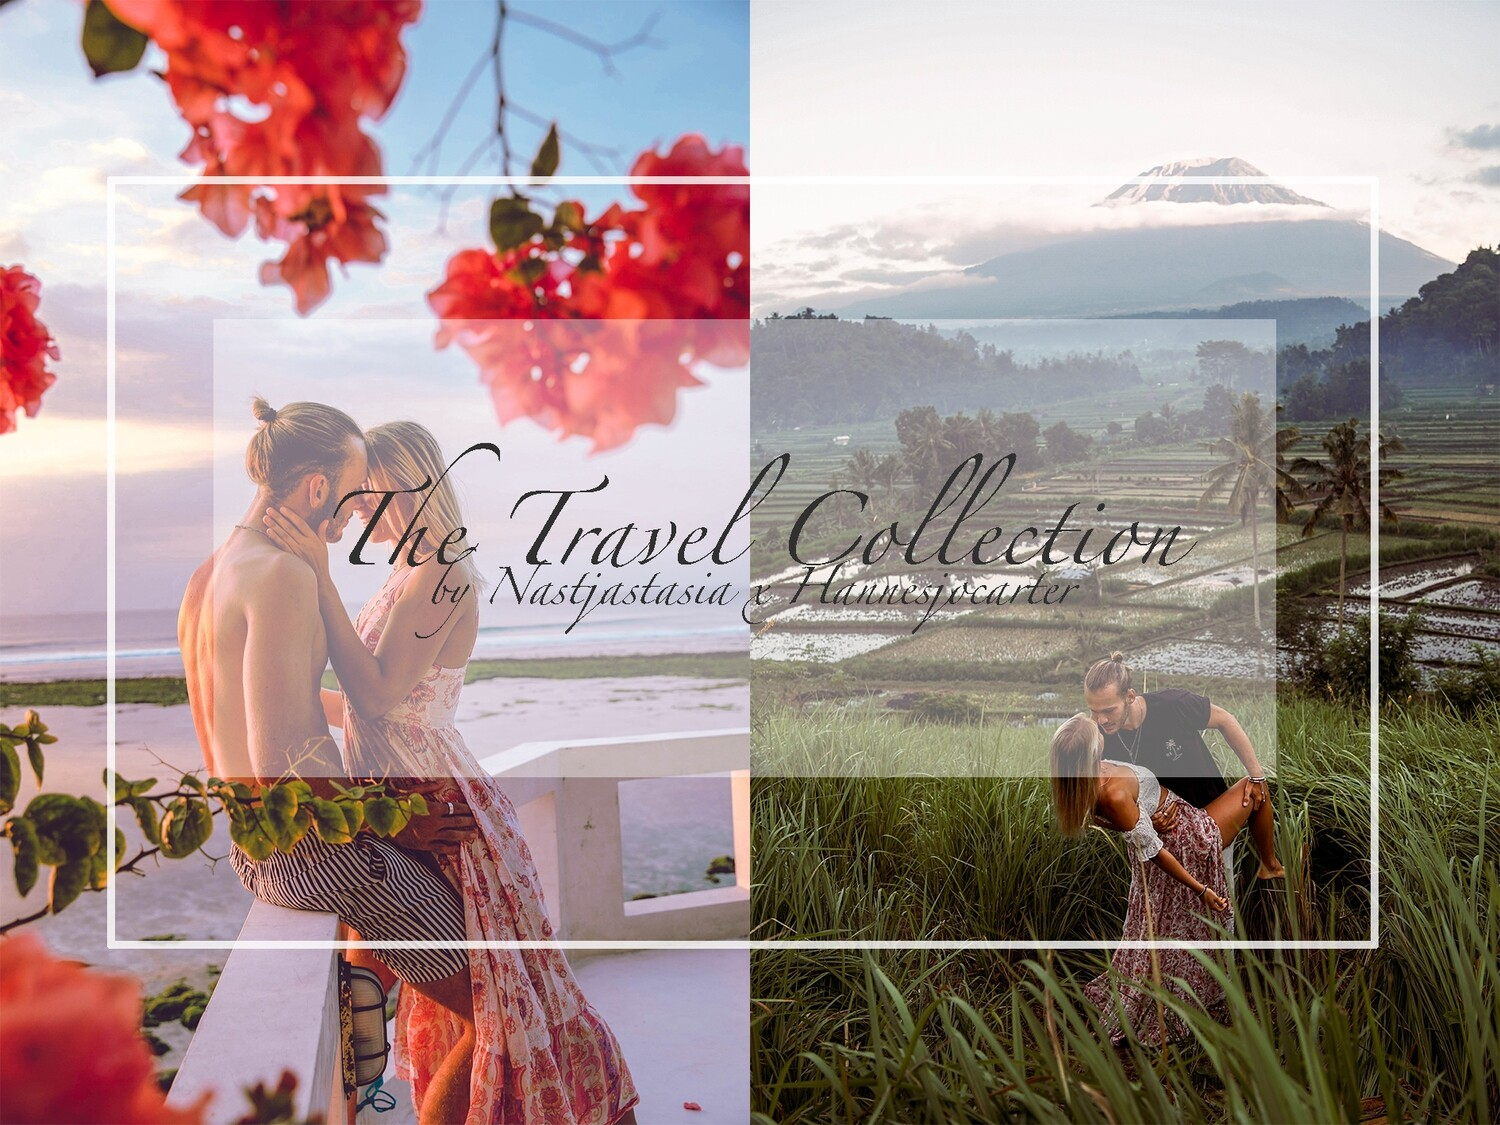 The Travel Collection - Desktop & Mobile